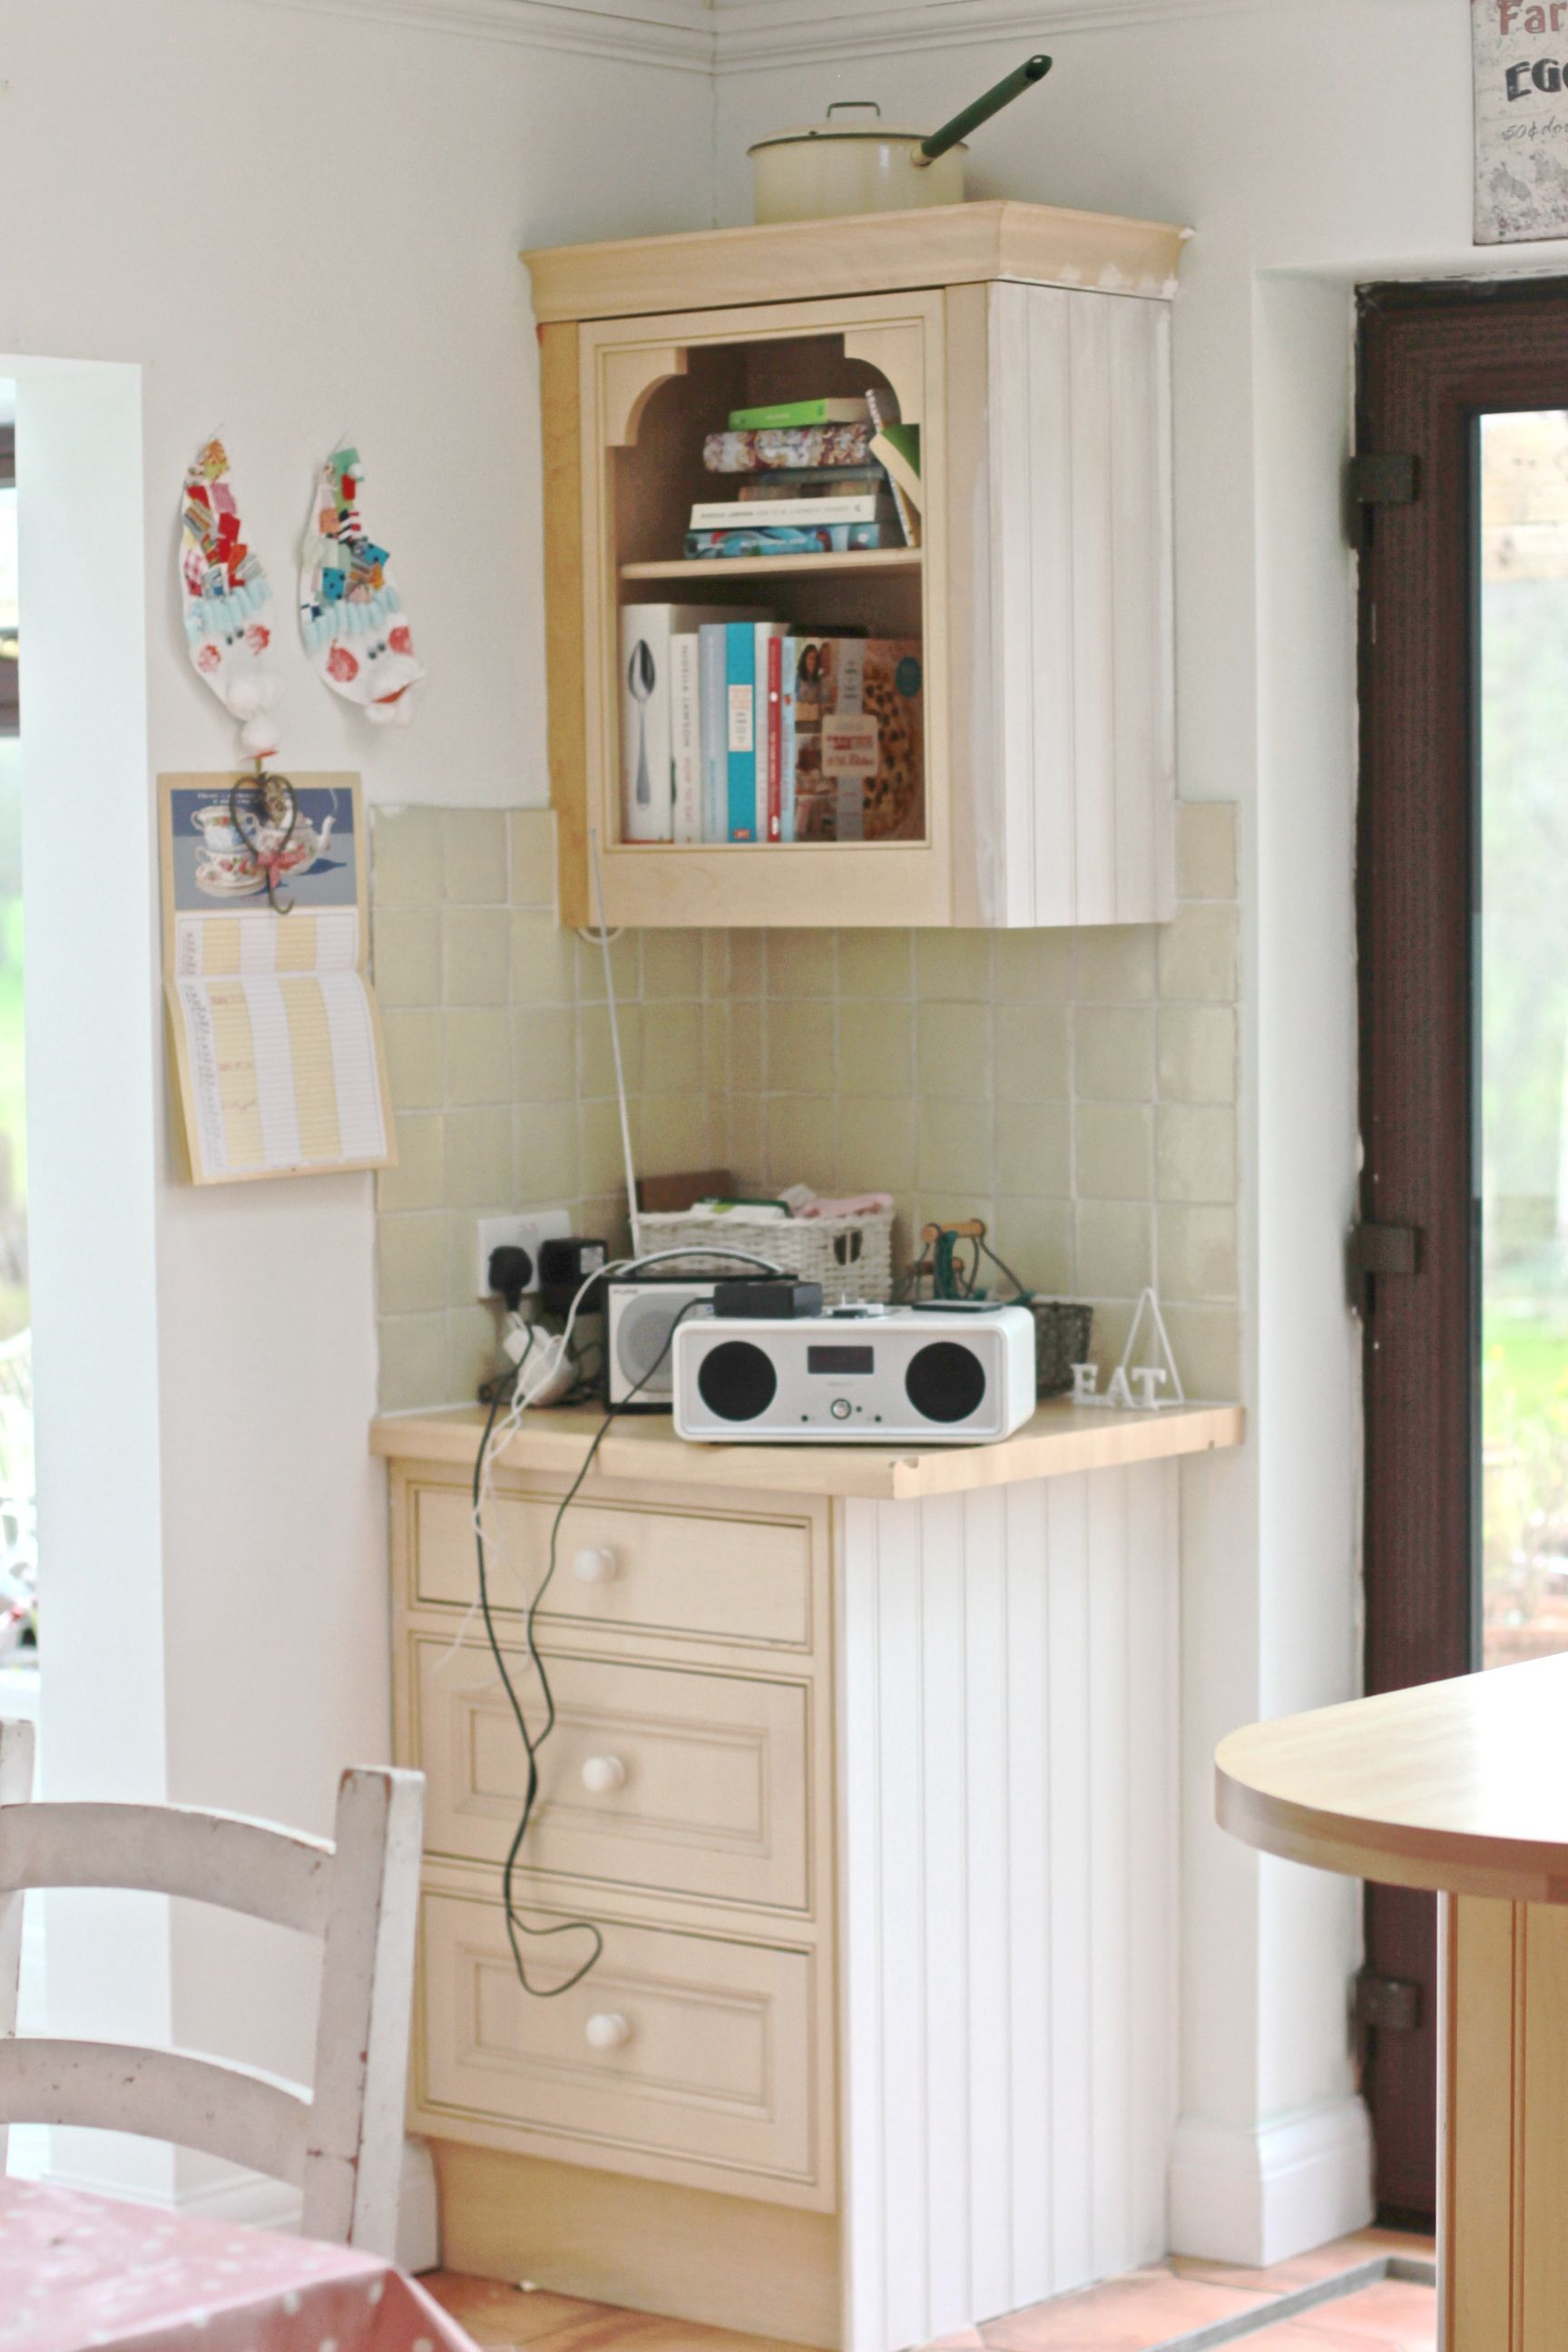 How to Paint Kitchen Cabinets | Cherry Menlove | Painting ...